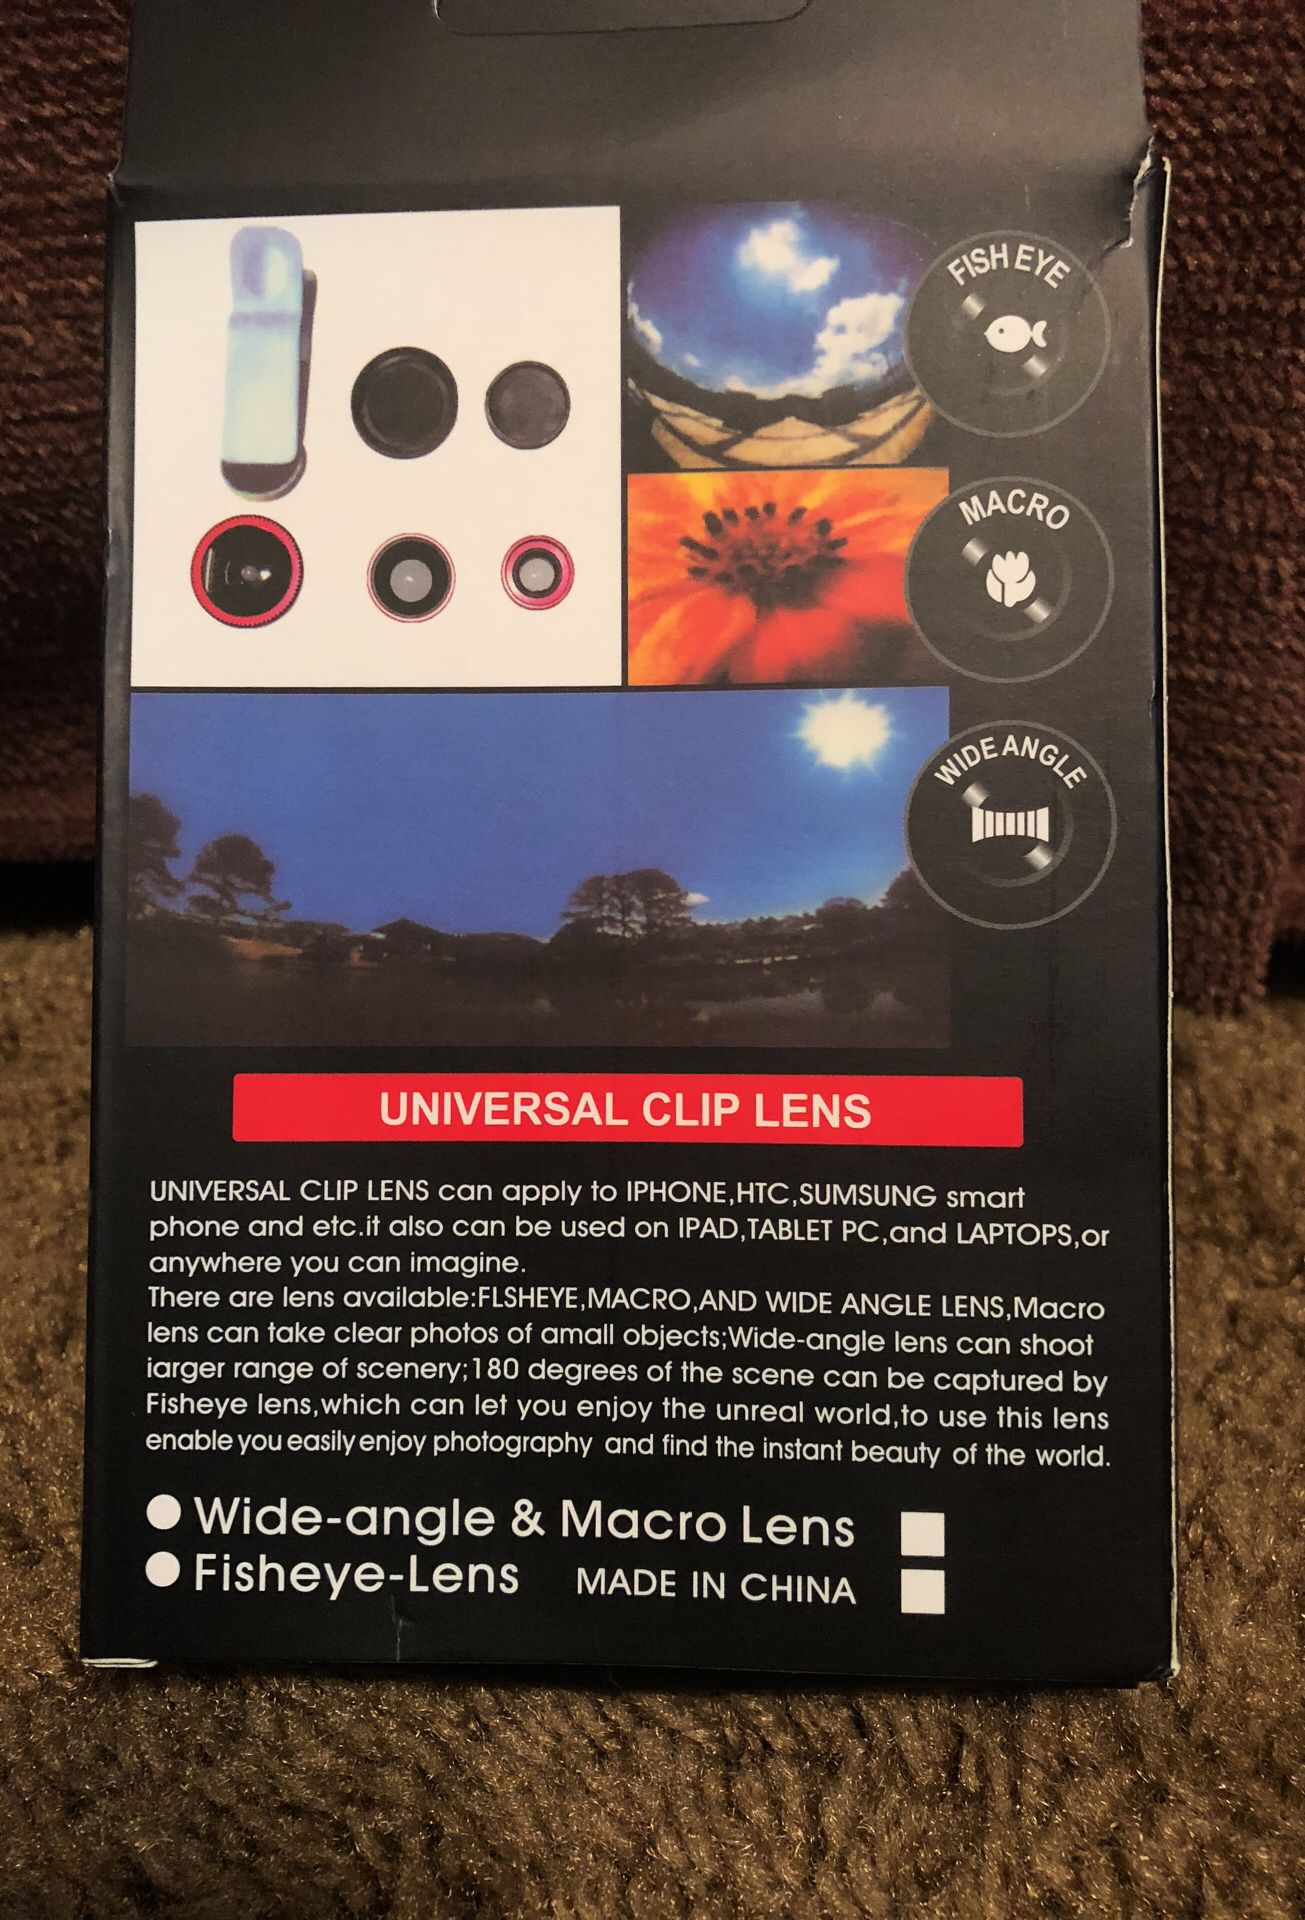 Universal clip lens can be used on I phones , htc , Samsung smart phone and etc , it also can be used on I pad tablet , and laptops ...